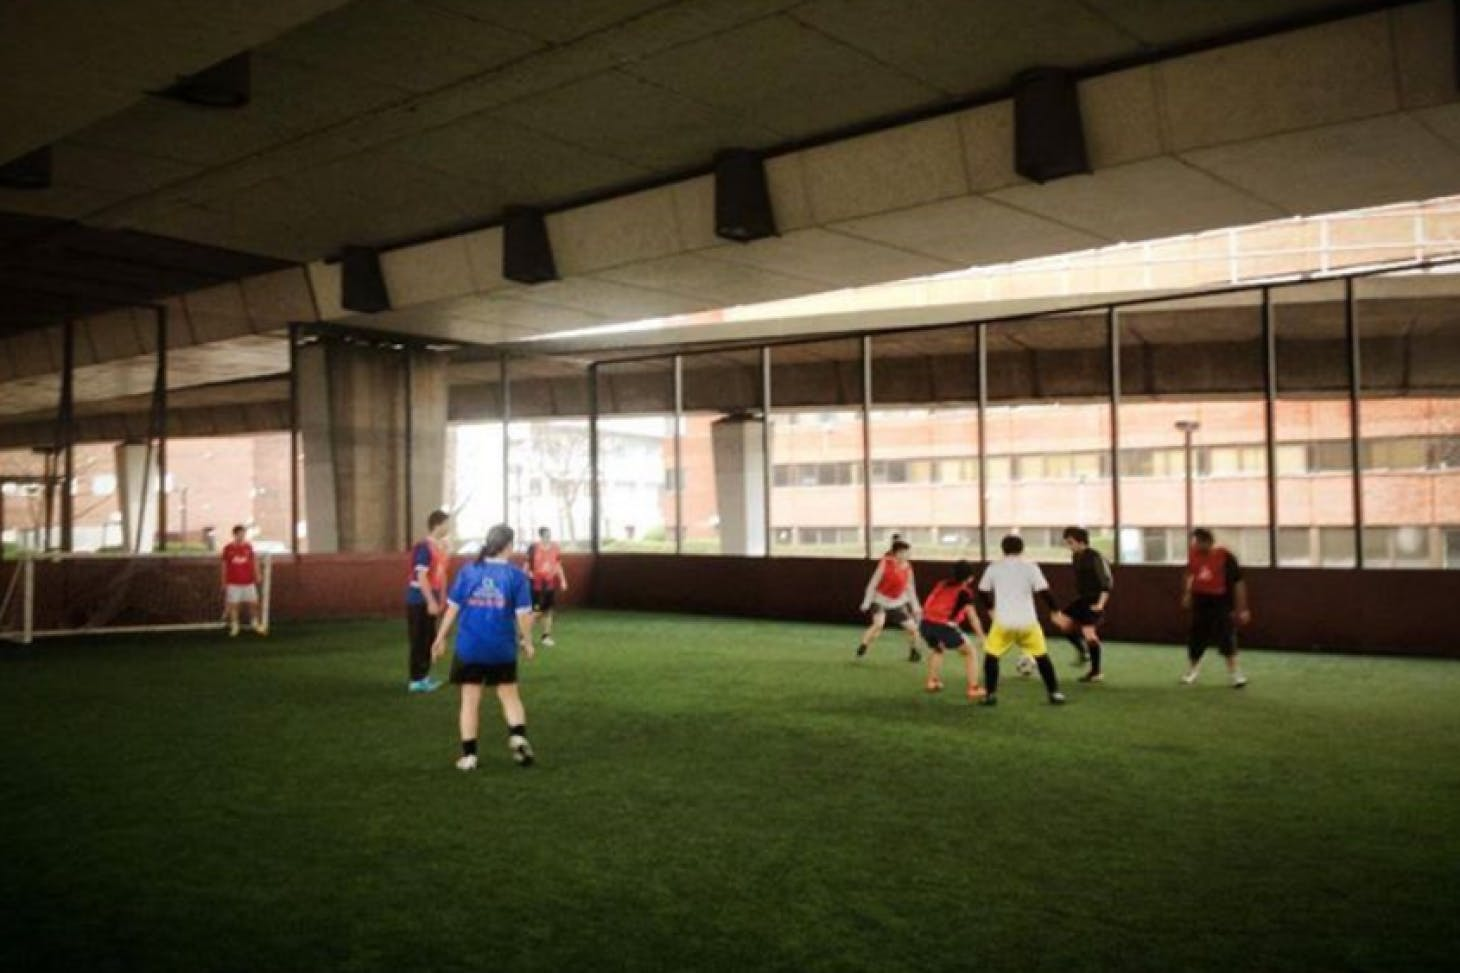 Sugden Sports Centre 5 a side | 3G Astroturf football pitch